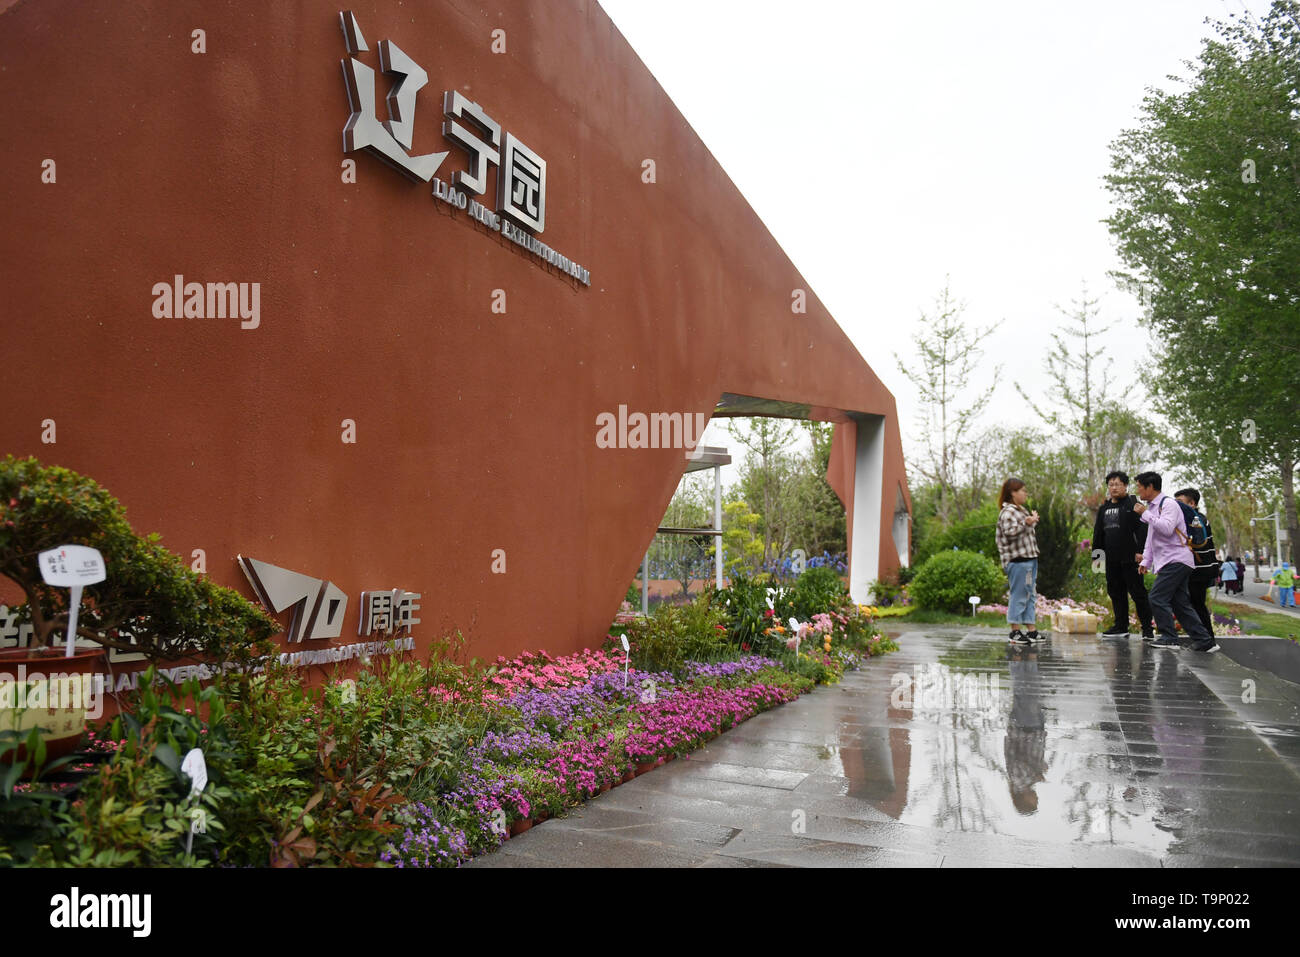 (190520) -- BEIJING, May 20, 2019 (Xinhua) -- Photo taken on May 19, 2019 shows the Liaoning Garden of the Beijing International Horticultural Exhibition in Beijing, capital of China. Liaoning Province is located in the southern part of Northeast China, with the Bohai Sea and the Yellow Sea lying to its south. Over the years, the provincial government has prioritized ecological development and set environmental improvement at the core of its agenda. The province's ecological conditions have been improving thanks to systematic conservation of the natural environment, overall management of the r Stock Photo